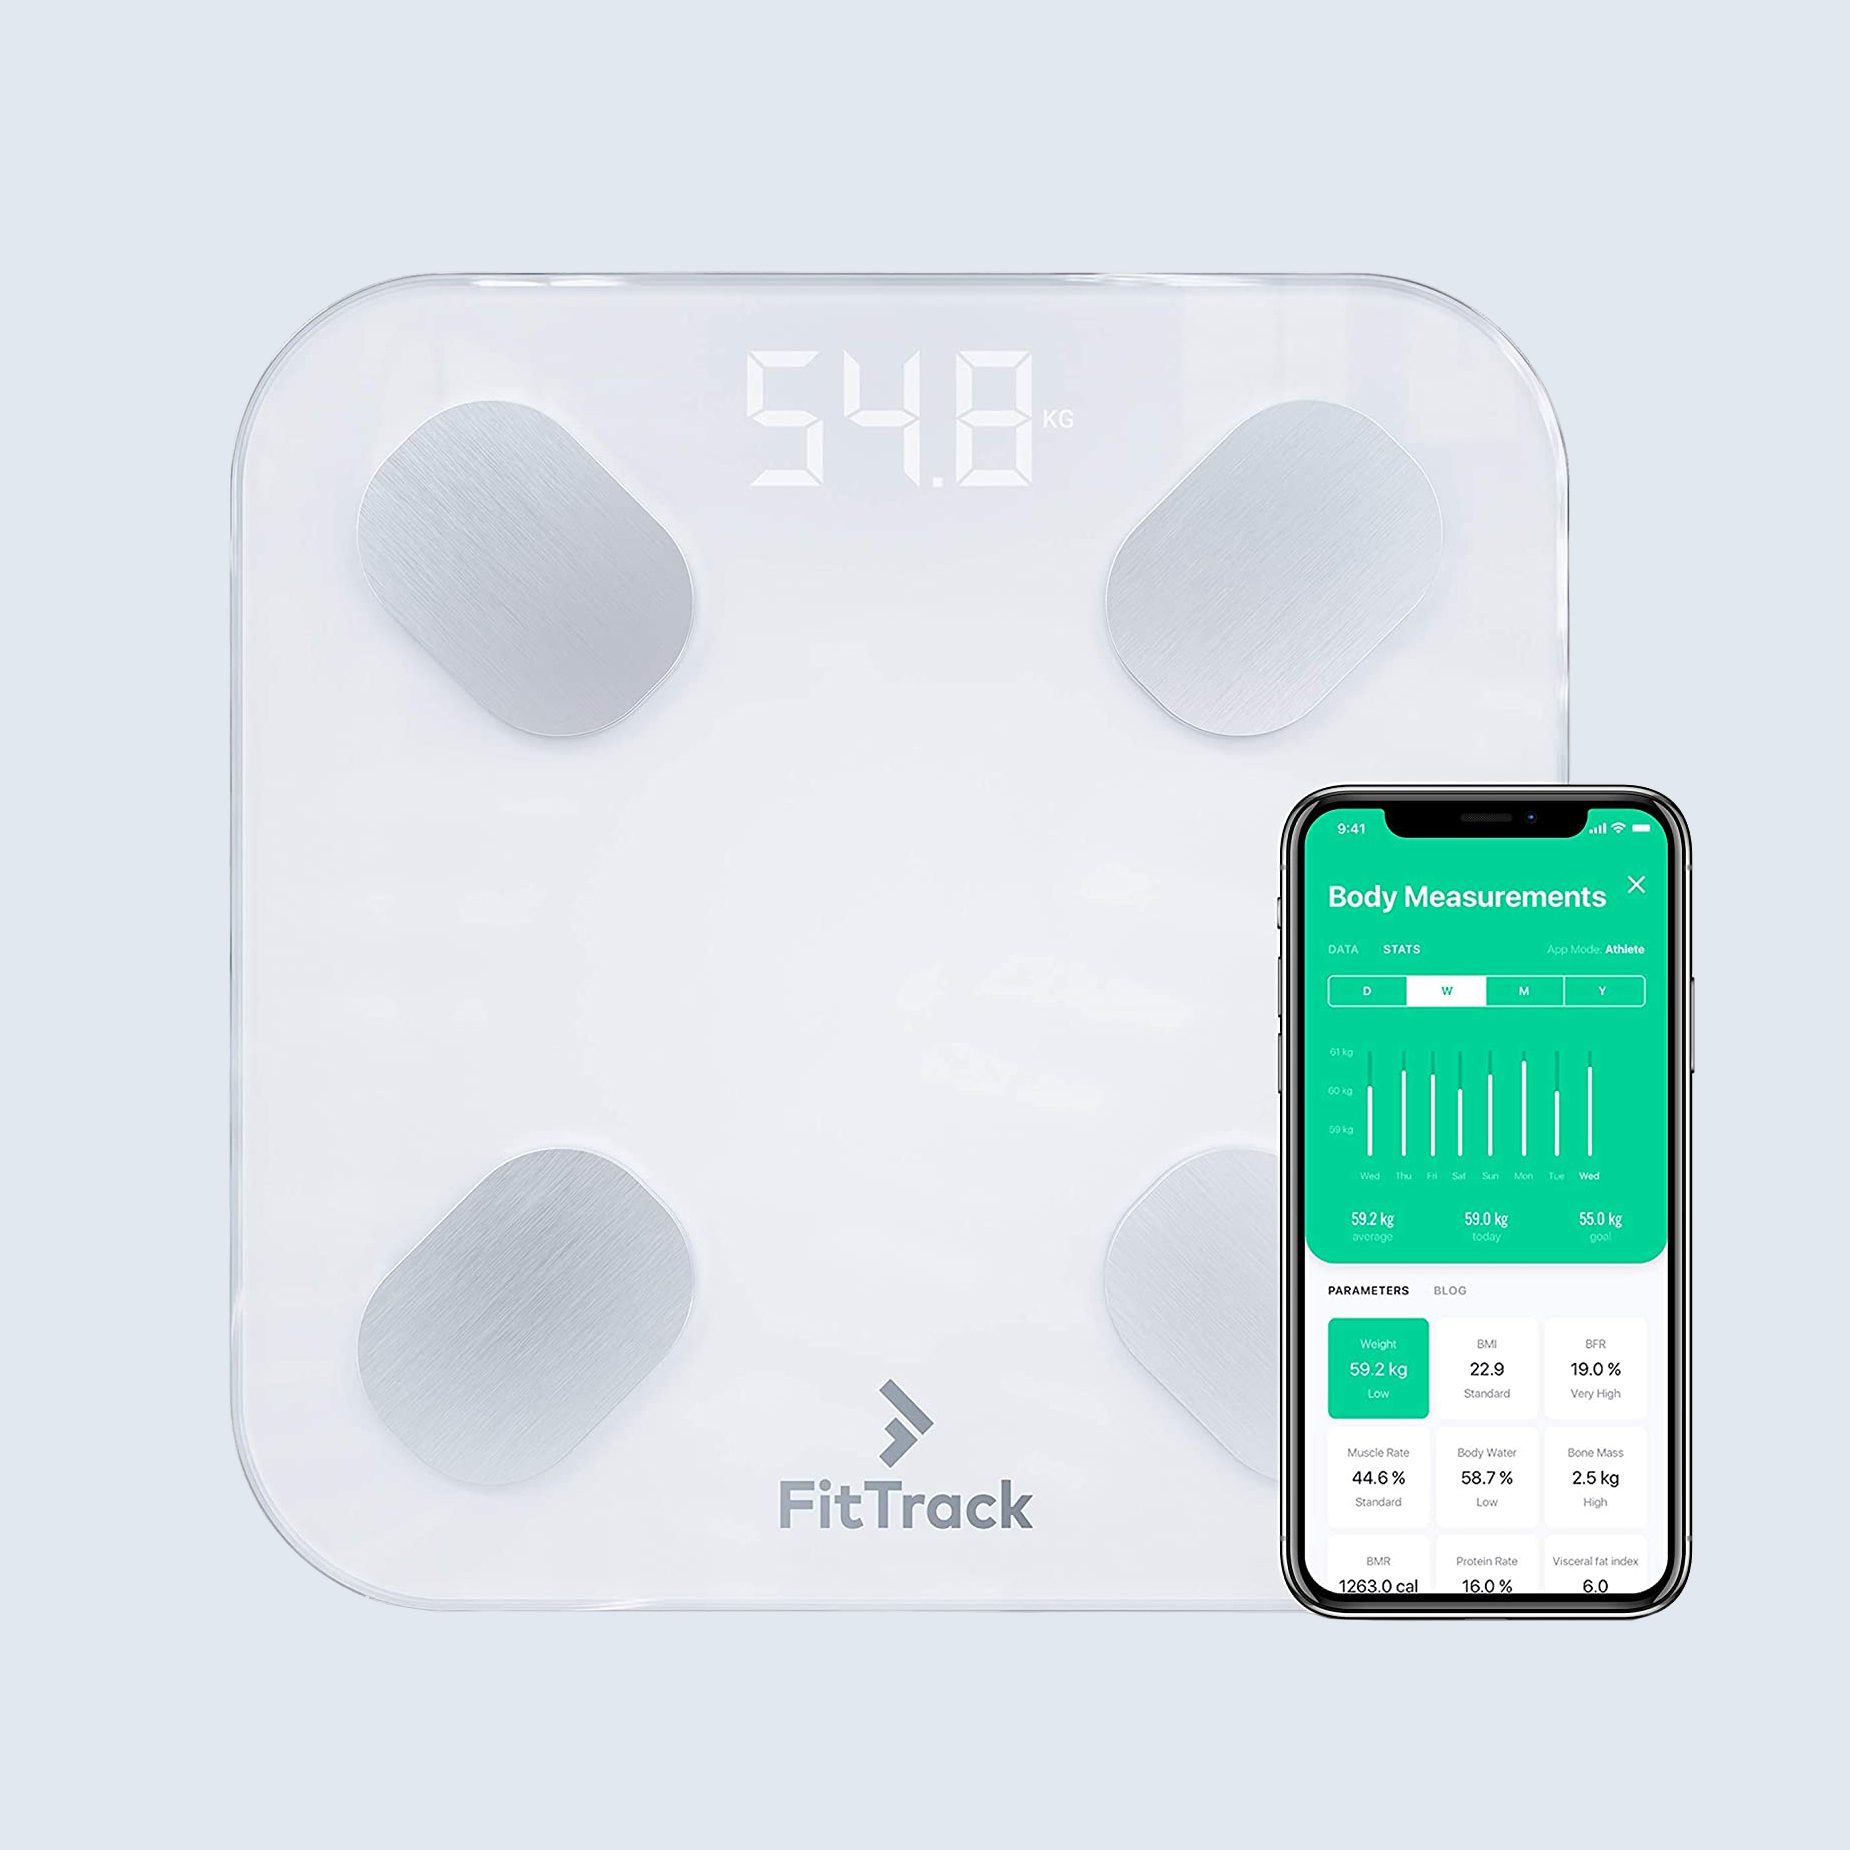 Dara Smart Scale by FitTrack